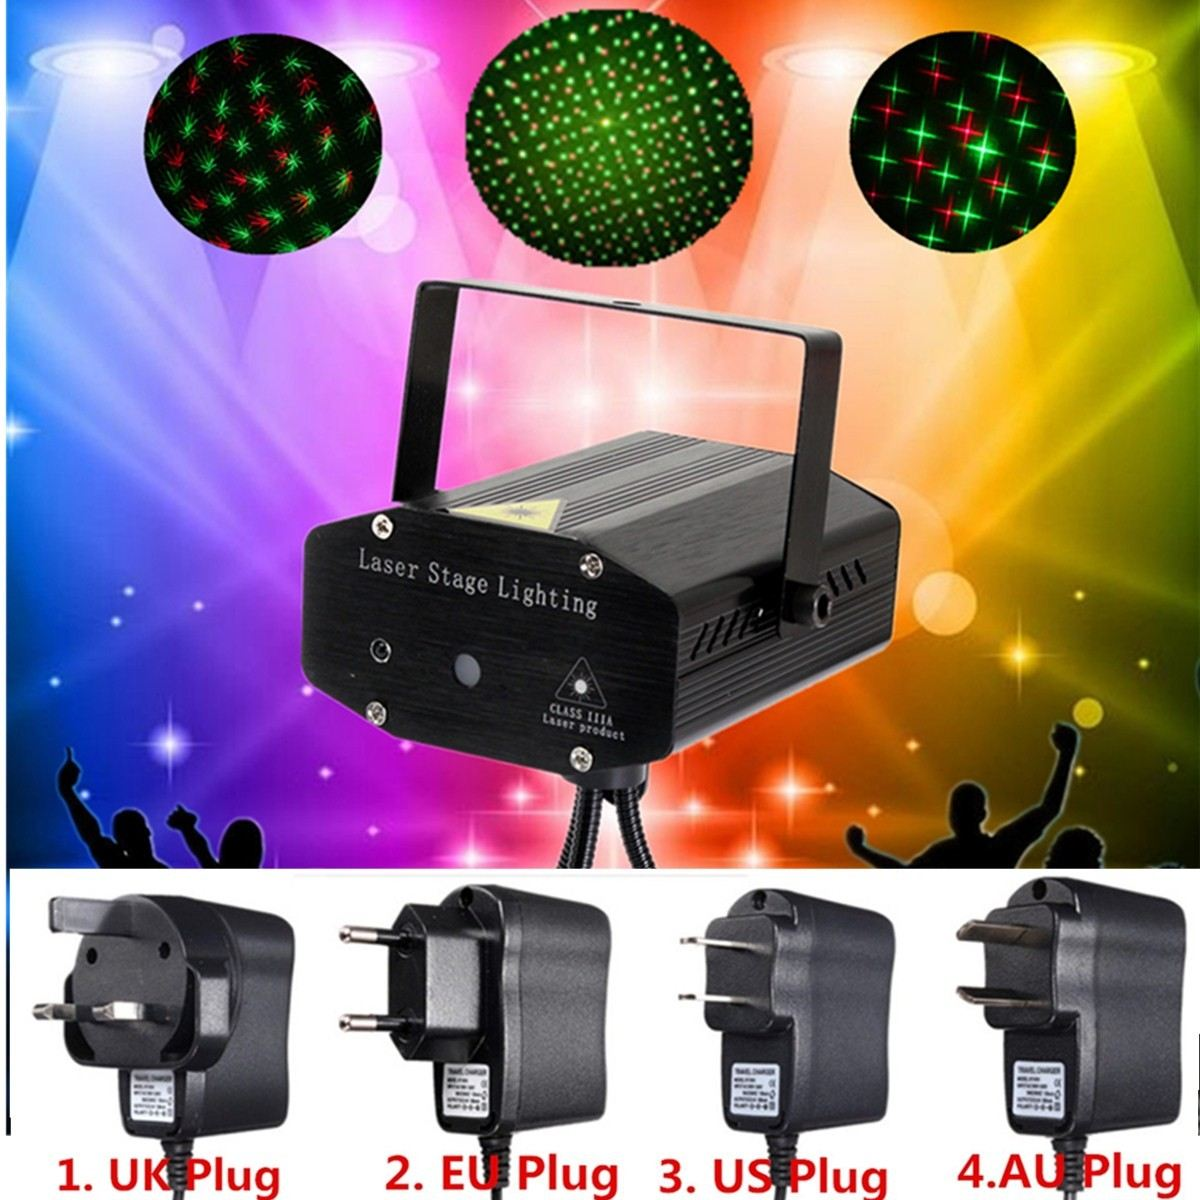 Remote Control Laser Projector Stage Light LED Night Lamp Hanging With Tripod DJ Club Pub Bar Disco Wedding Party Show Lighting venta 150mw luces lasers 650nm dpss luz lazer automatico control remoto sonido show laser pub bar boda diodo laser envio gratis